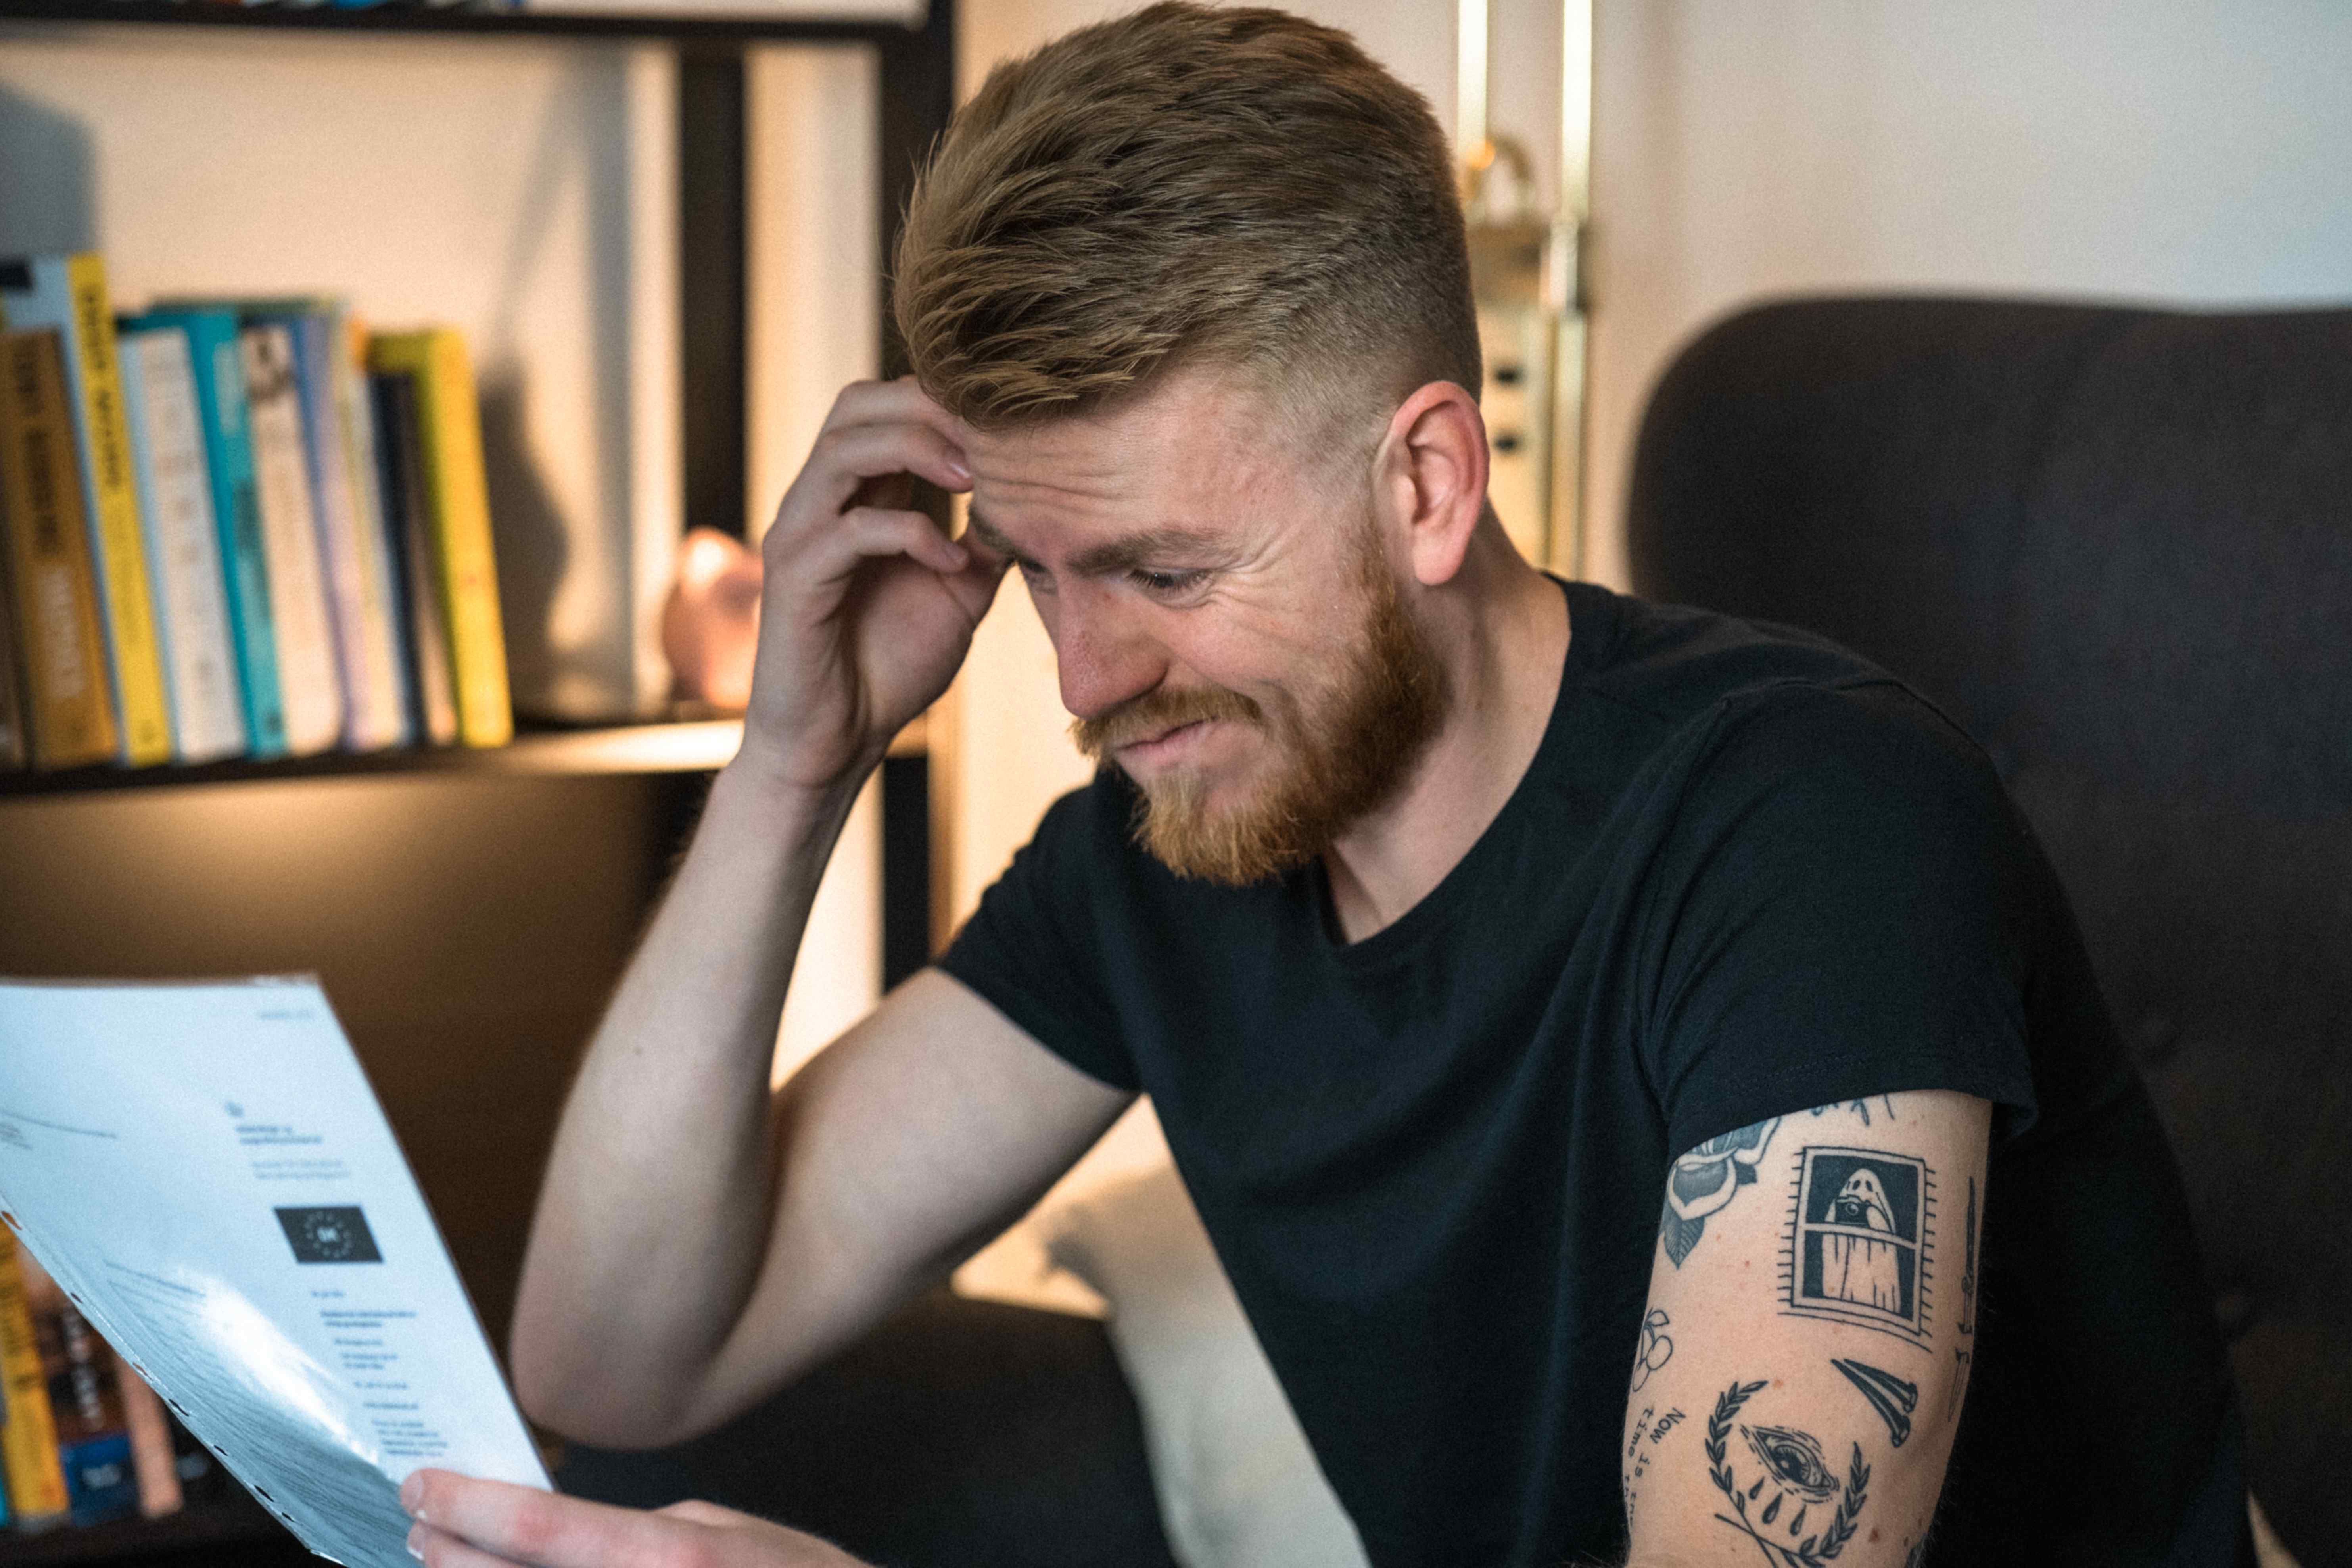 Frustrated student reading his employment contract